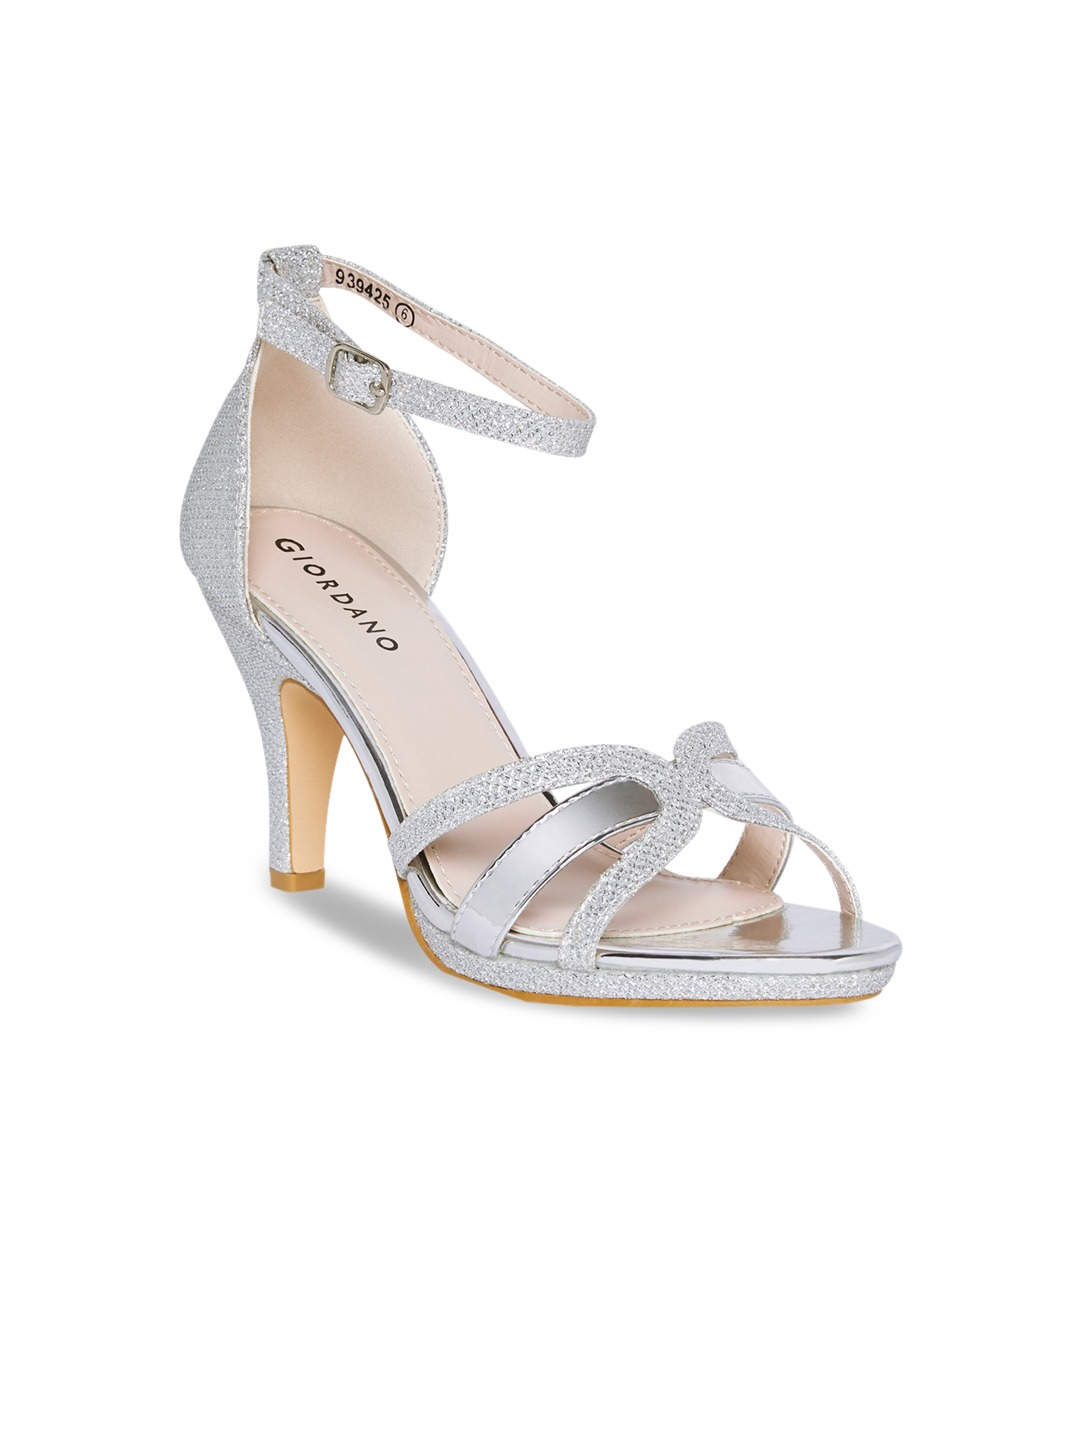 Silver-Toned Solid Heels